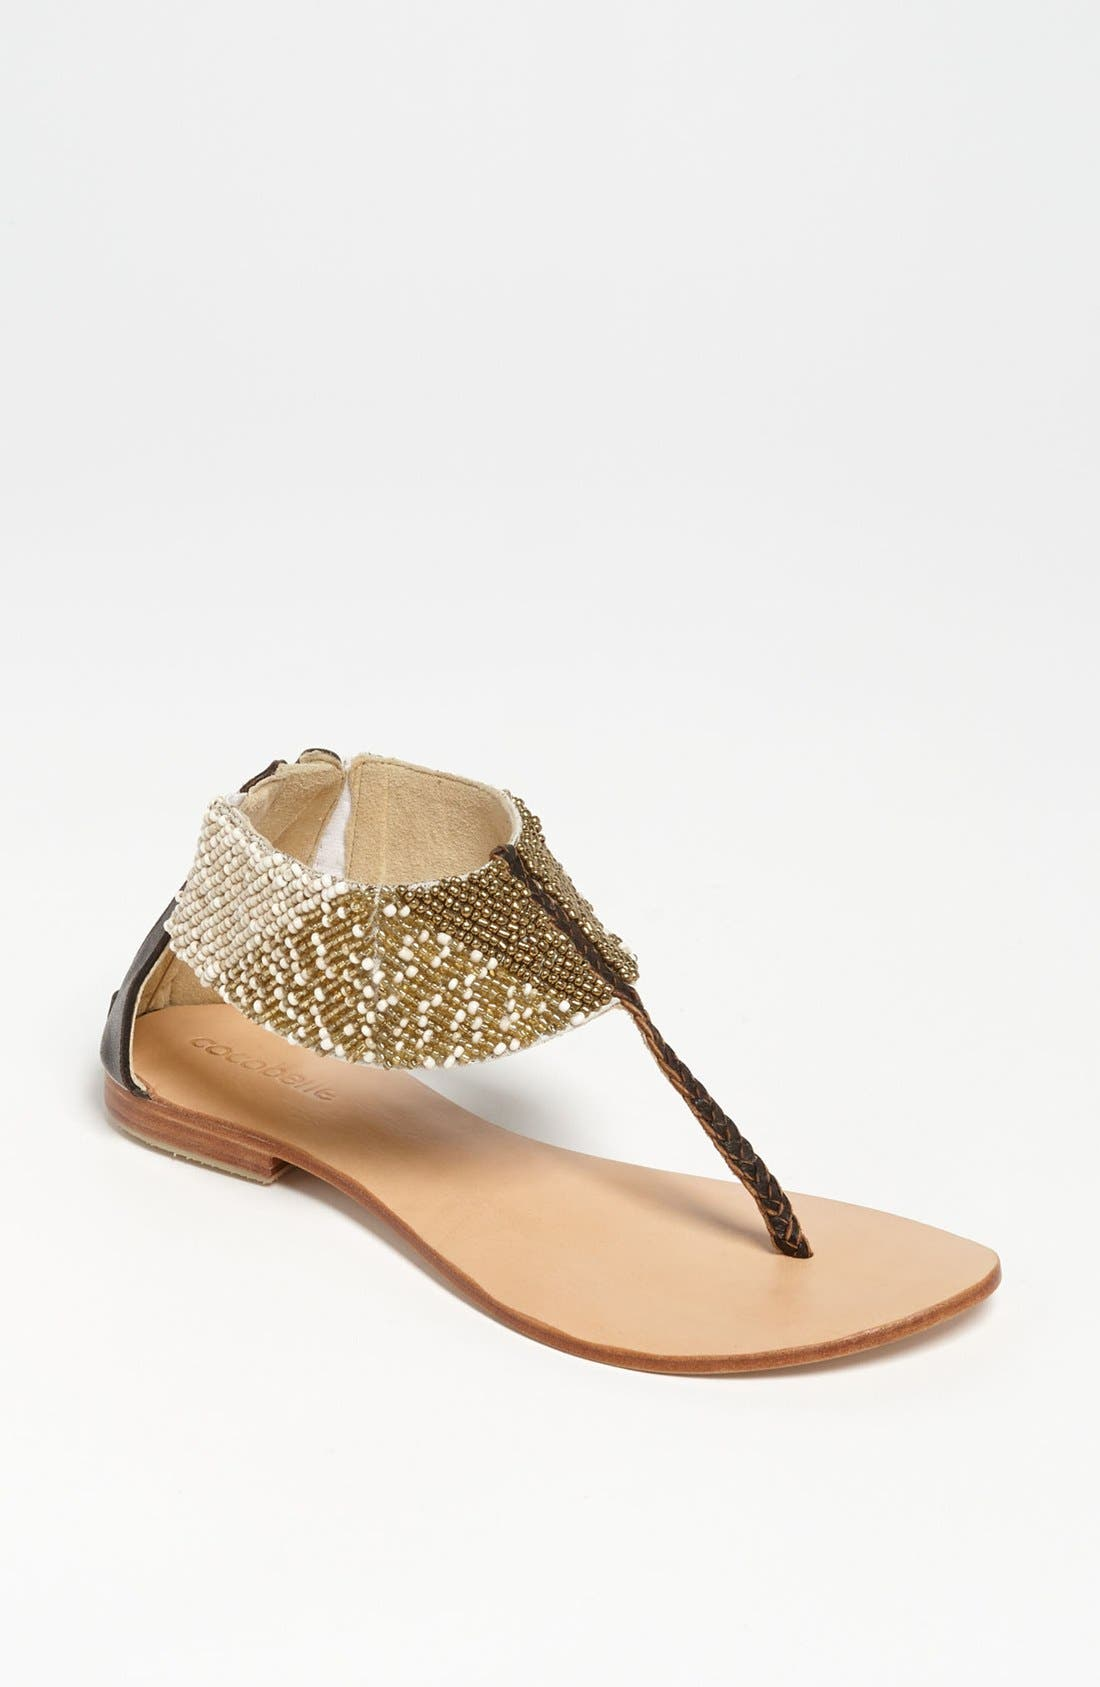 Alternate Image 1 Selected - Cocobelle 'Coco' Sandal